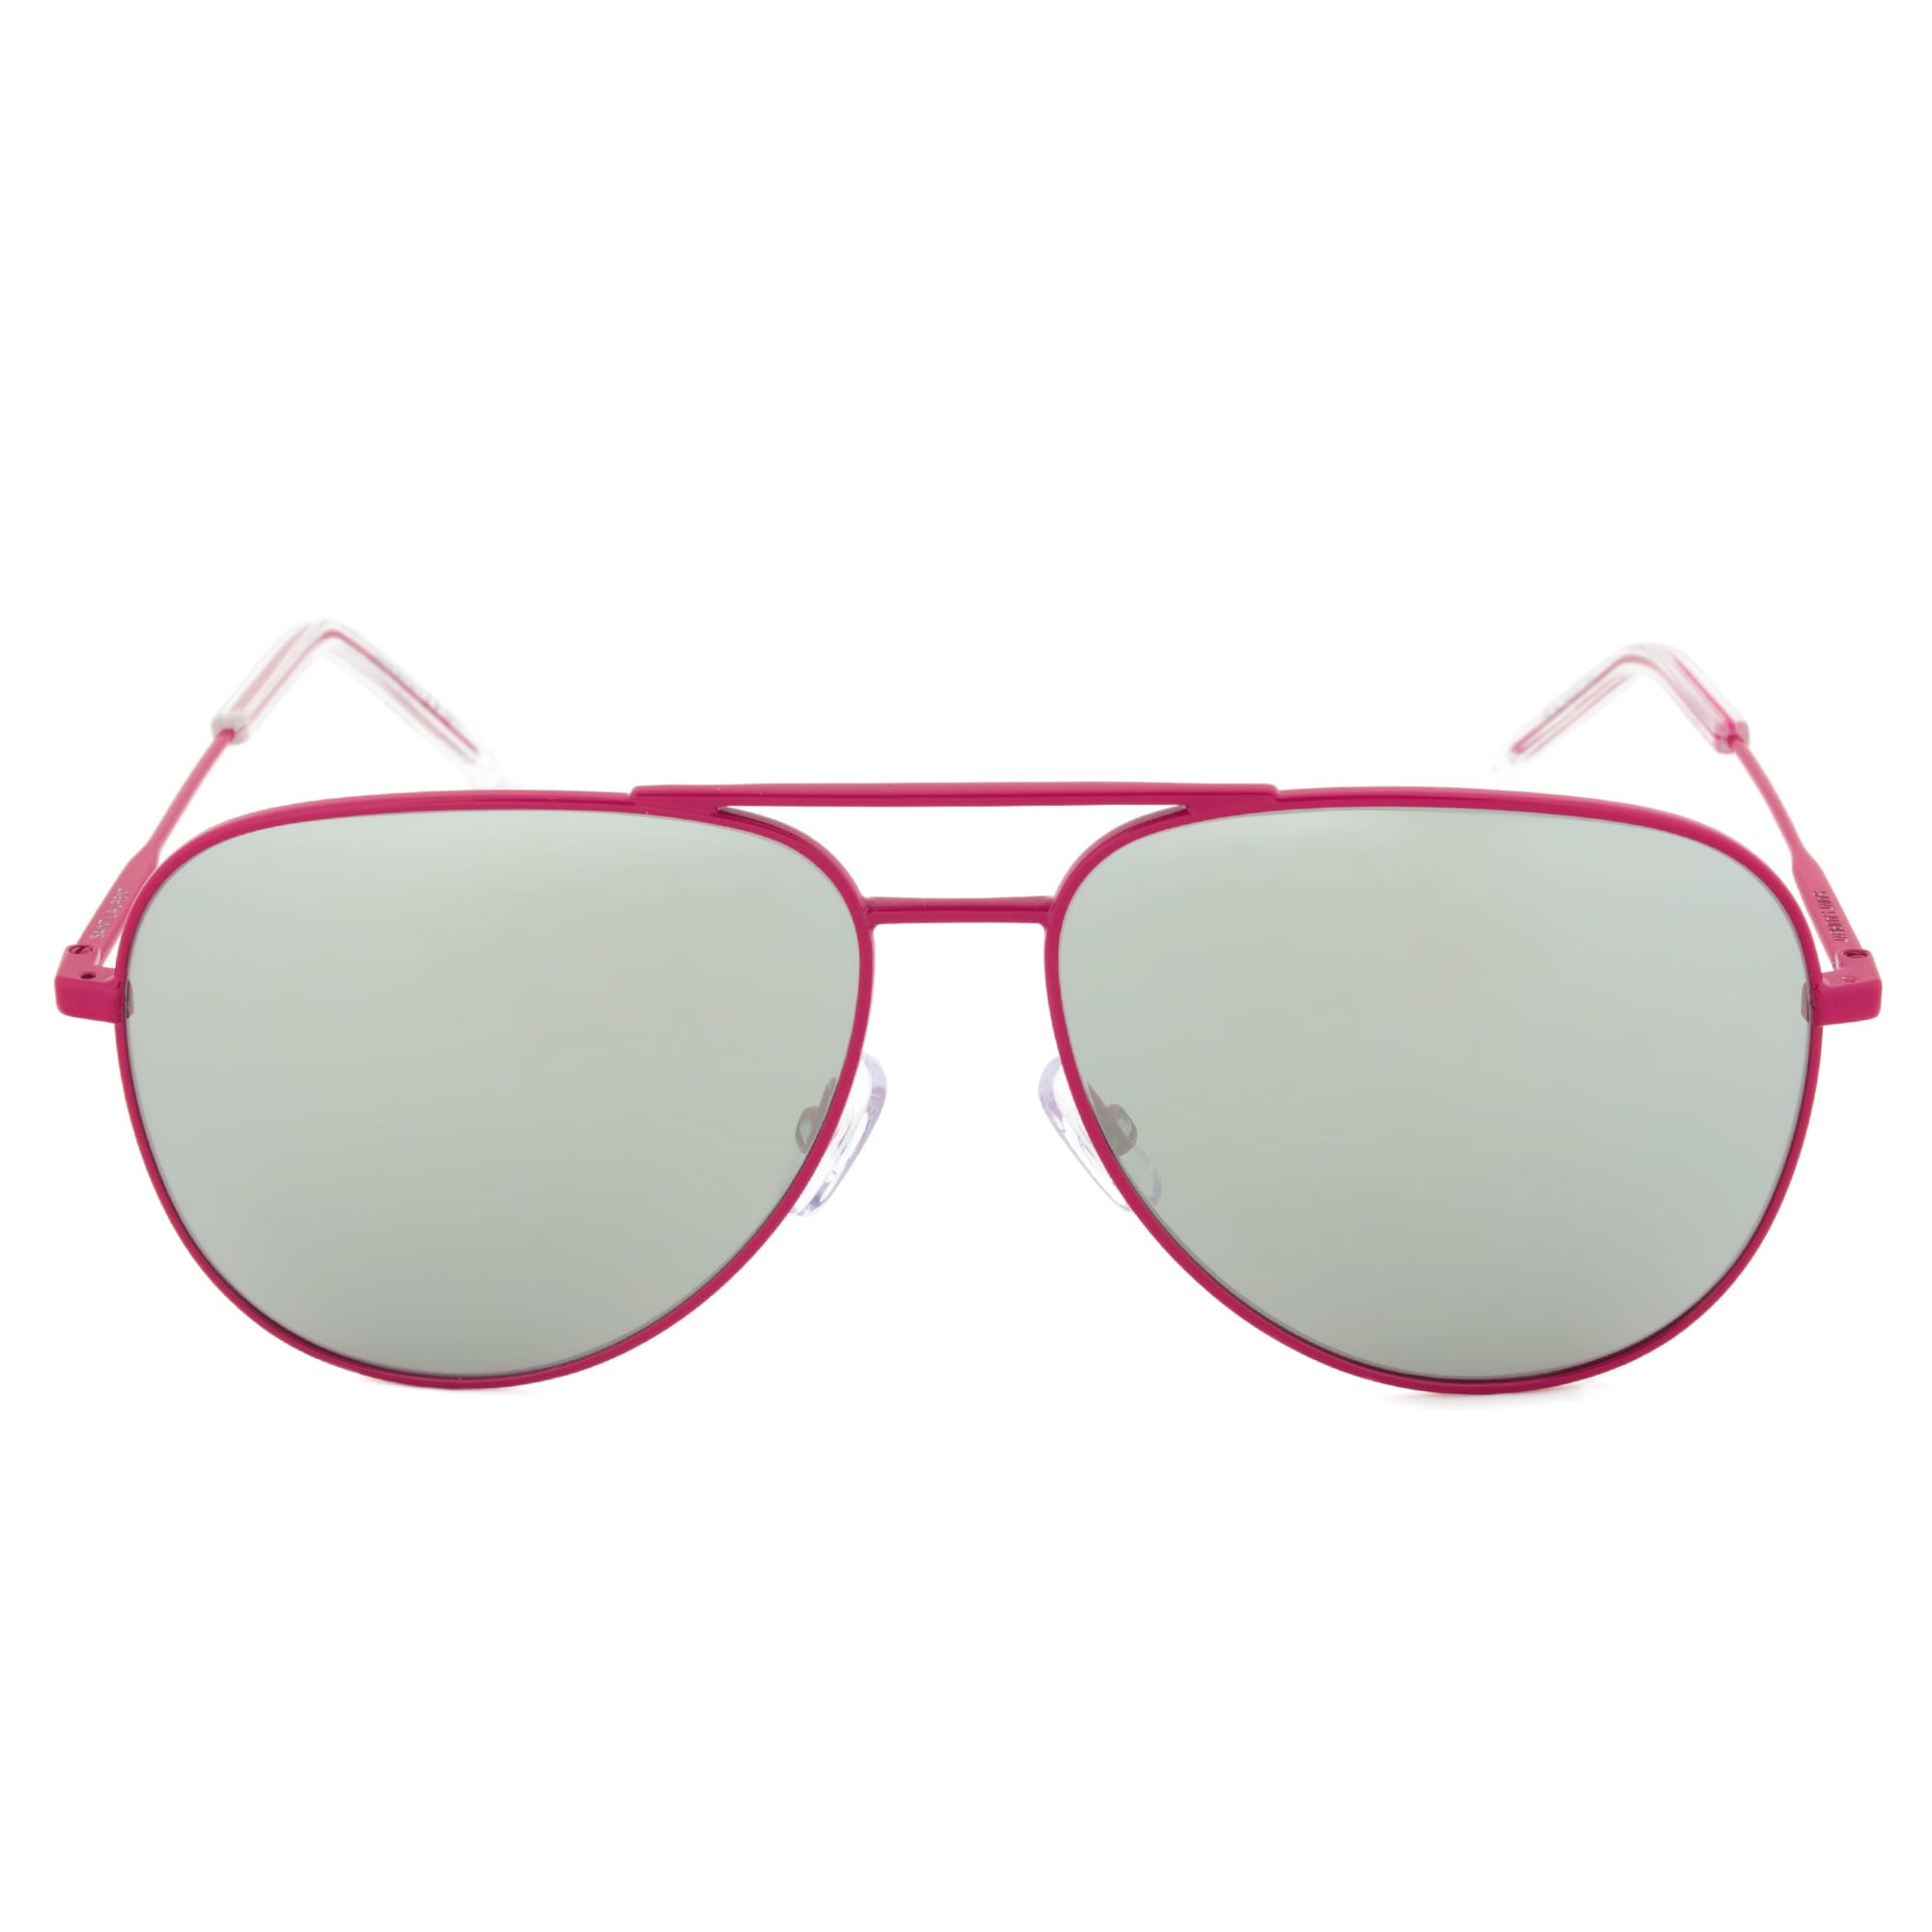 c69eb39641 Shop Yves Saint Laurent Paris YSL Classic 11 28KJ5 Aviator Sunglasses with  Fuchsia Frame and Silver Mirro - Free Shipping Today - Overstock.com -  10533135